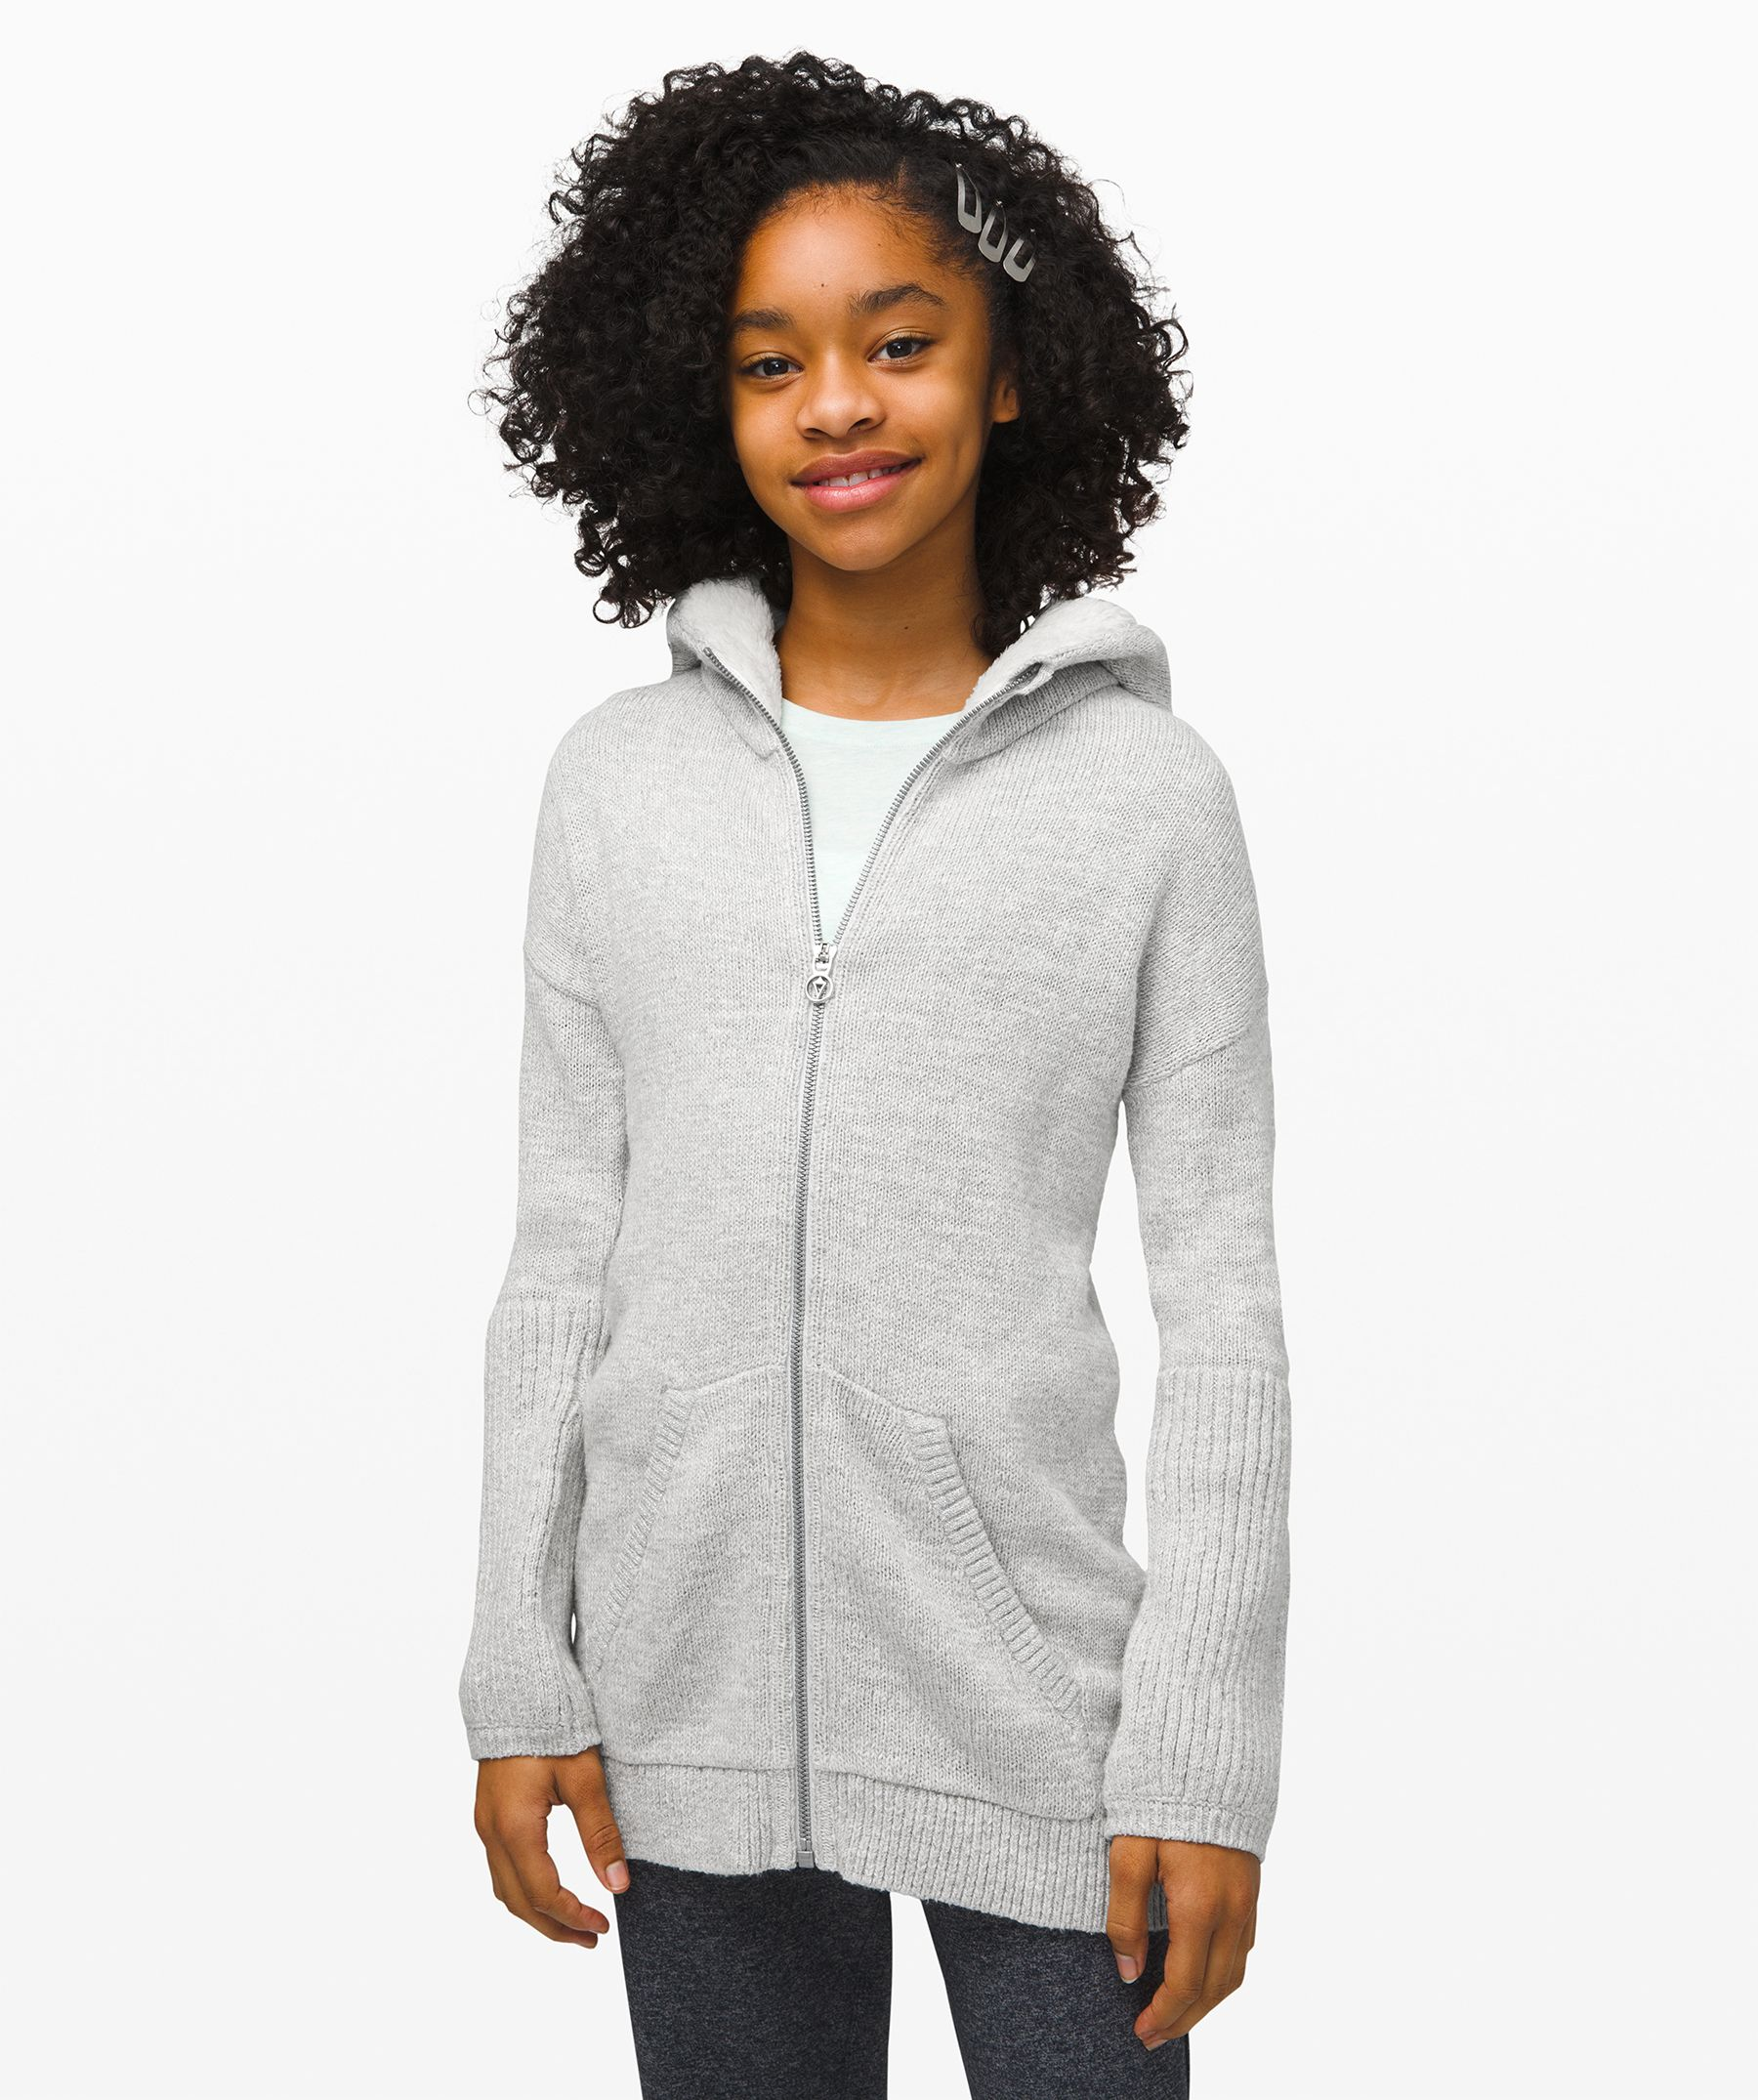 To class, practice, and  beyond. This knit jacket will  keep her warm, wherever she  goes.